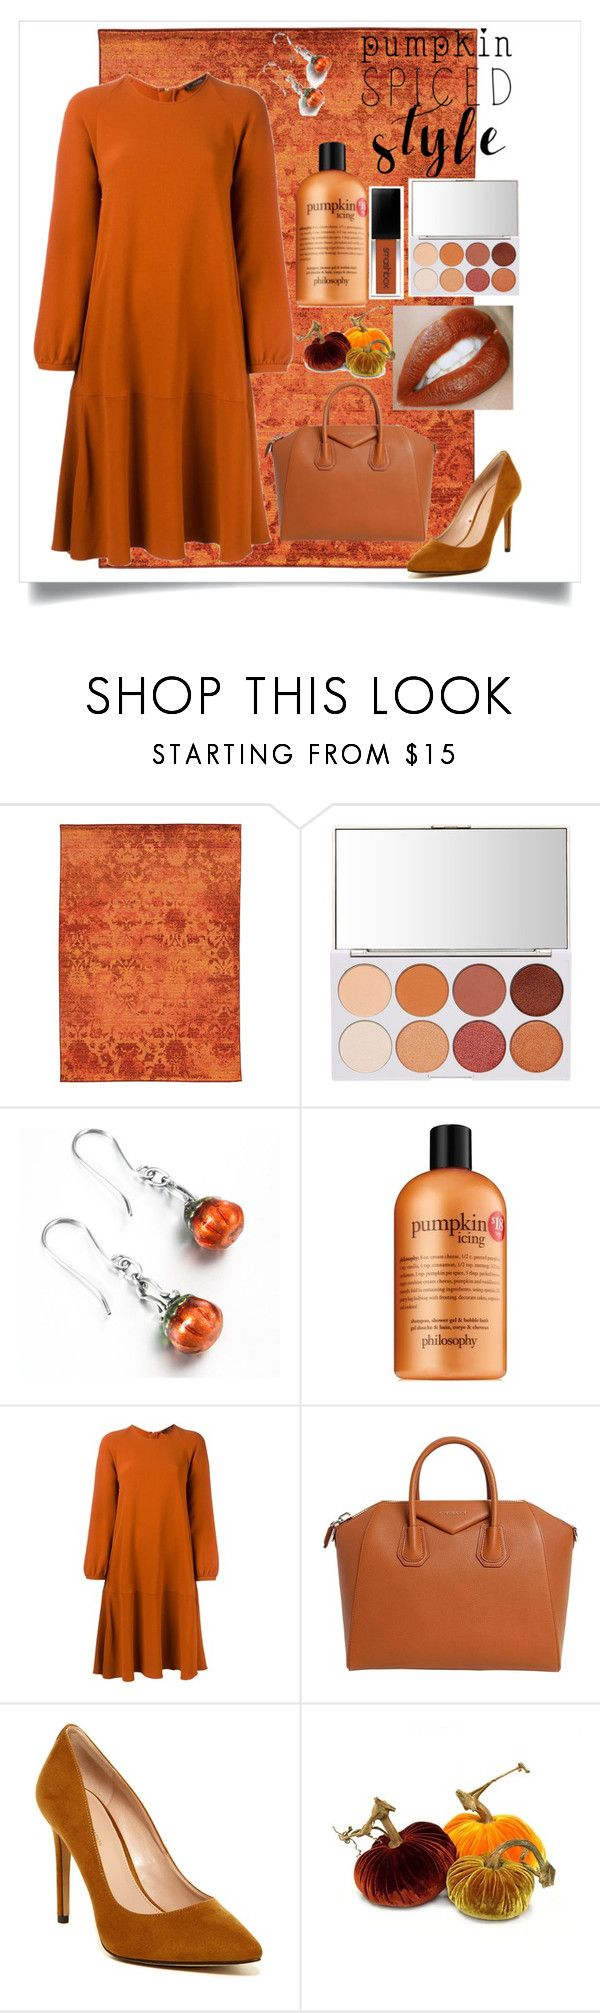 """Pumpkin Spice 🎃"" by heythatsalya ❤ liked on Polyvore featuring Pantone Universe, philosophy, Odeeh, Givenchy, BCBGeneration and PearlsandLace"